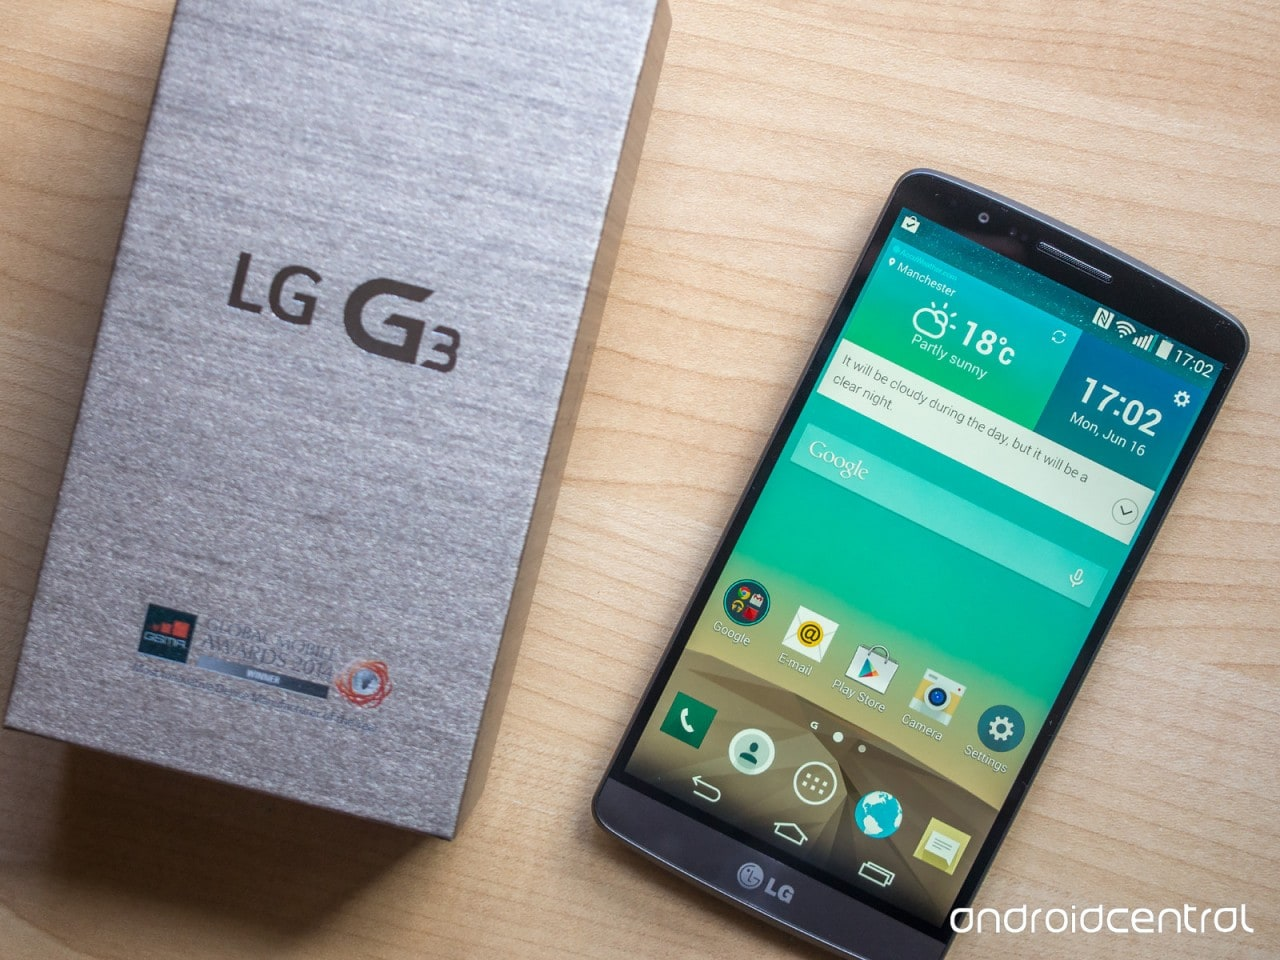 LG G3 unboxing 15